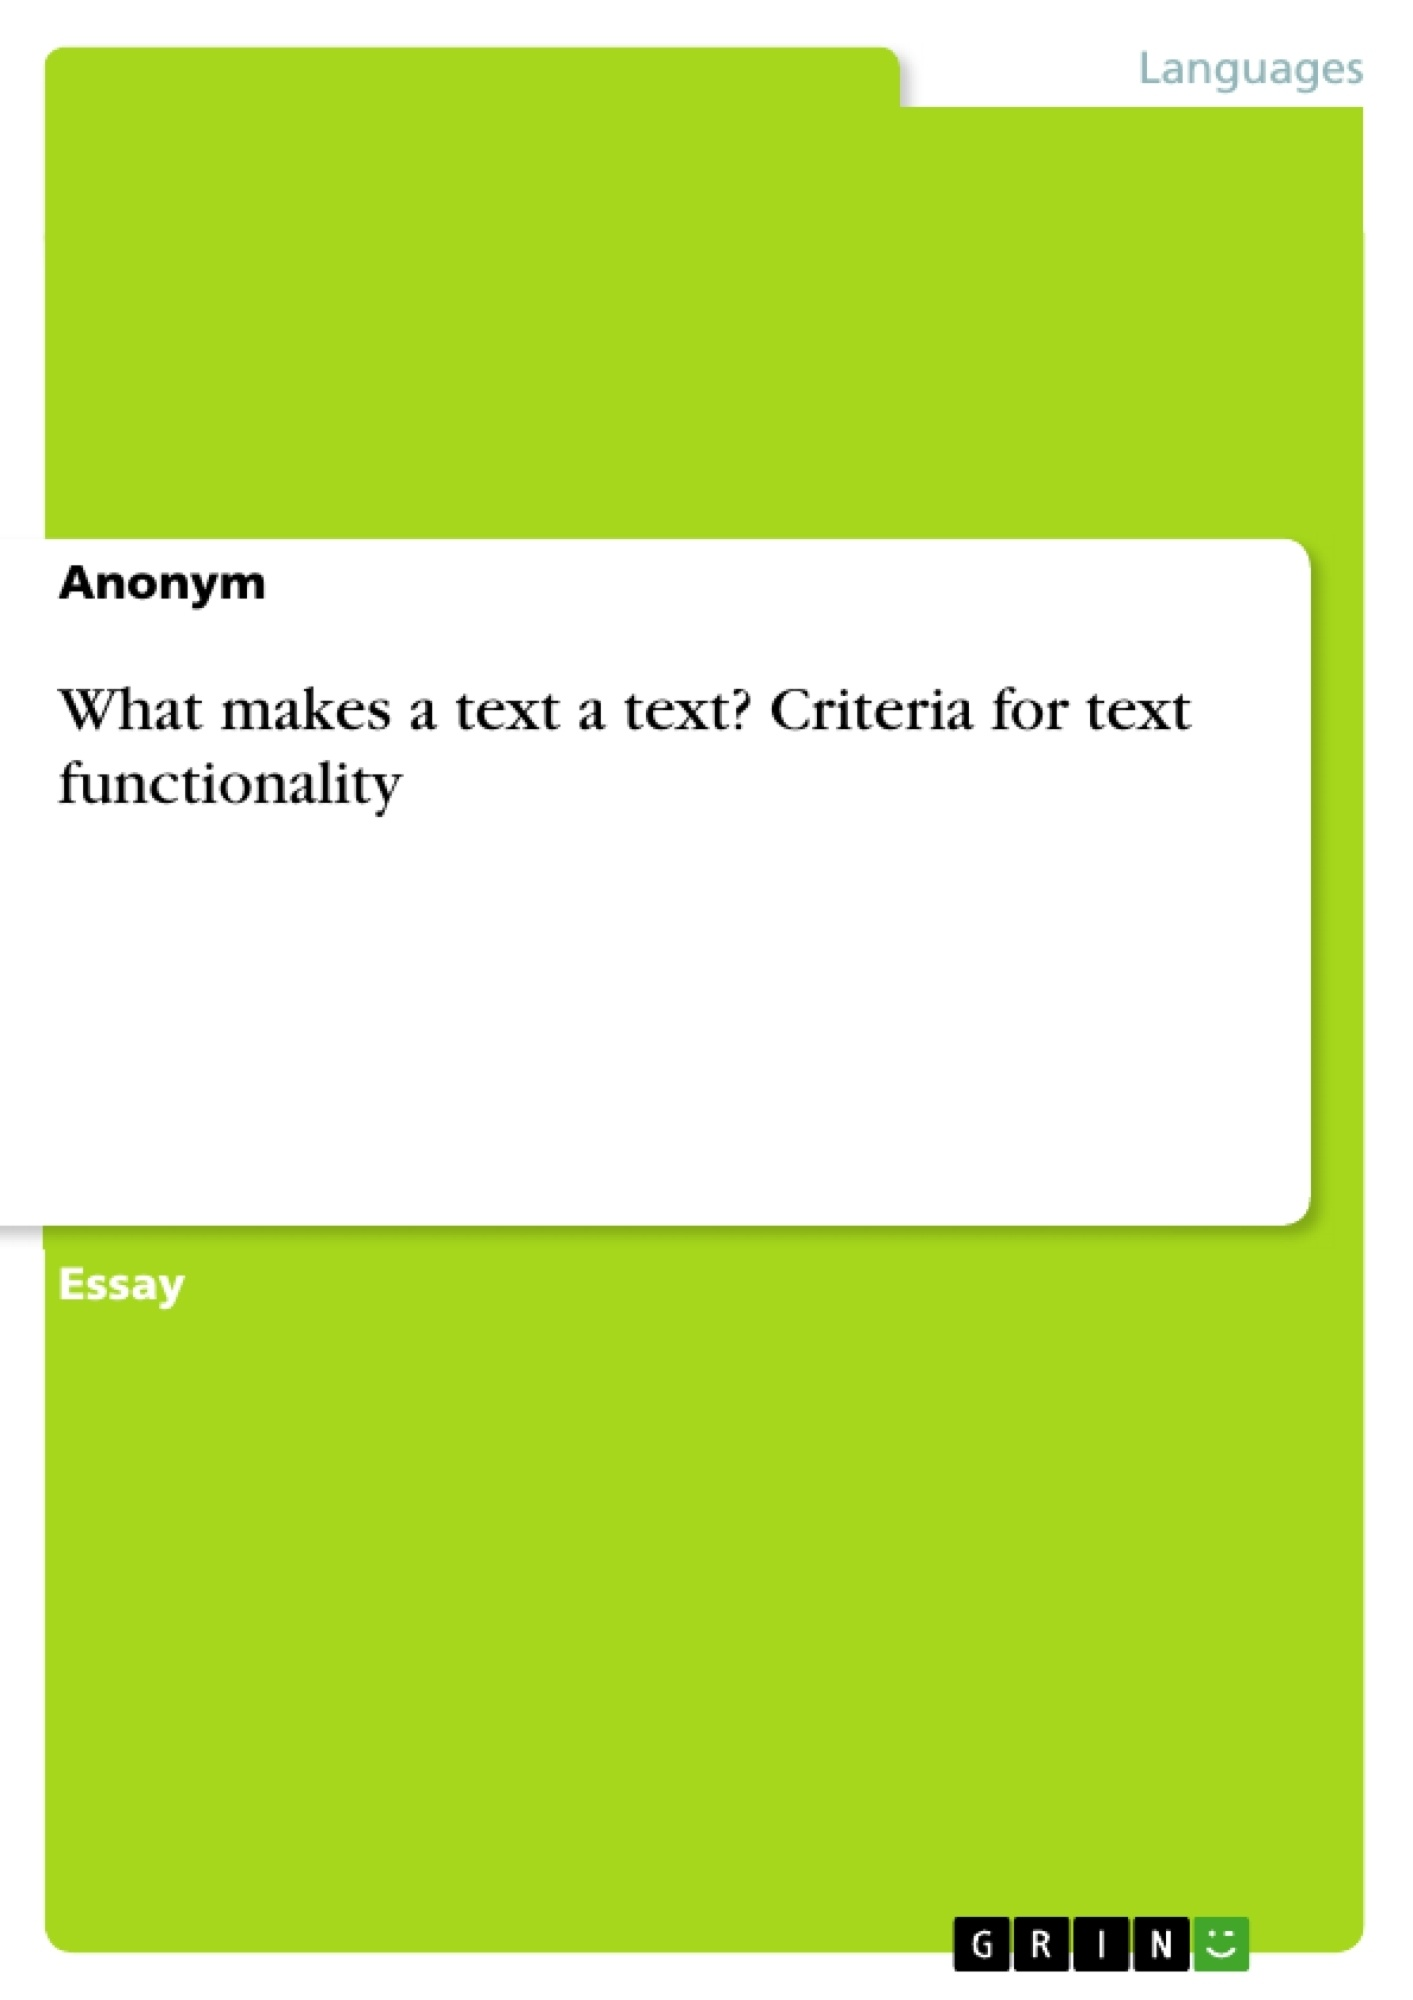 Title: What makes a text a text? Criteria for text functionality